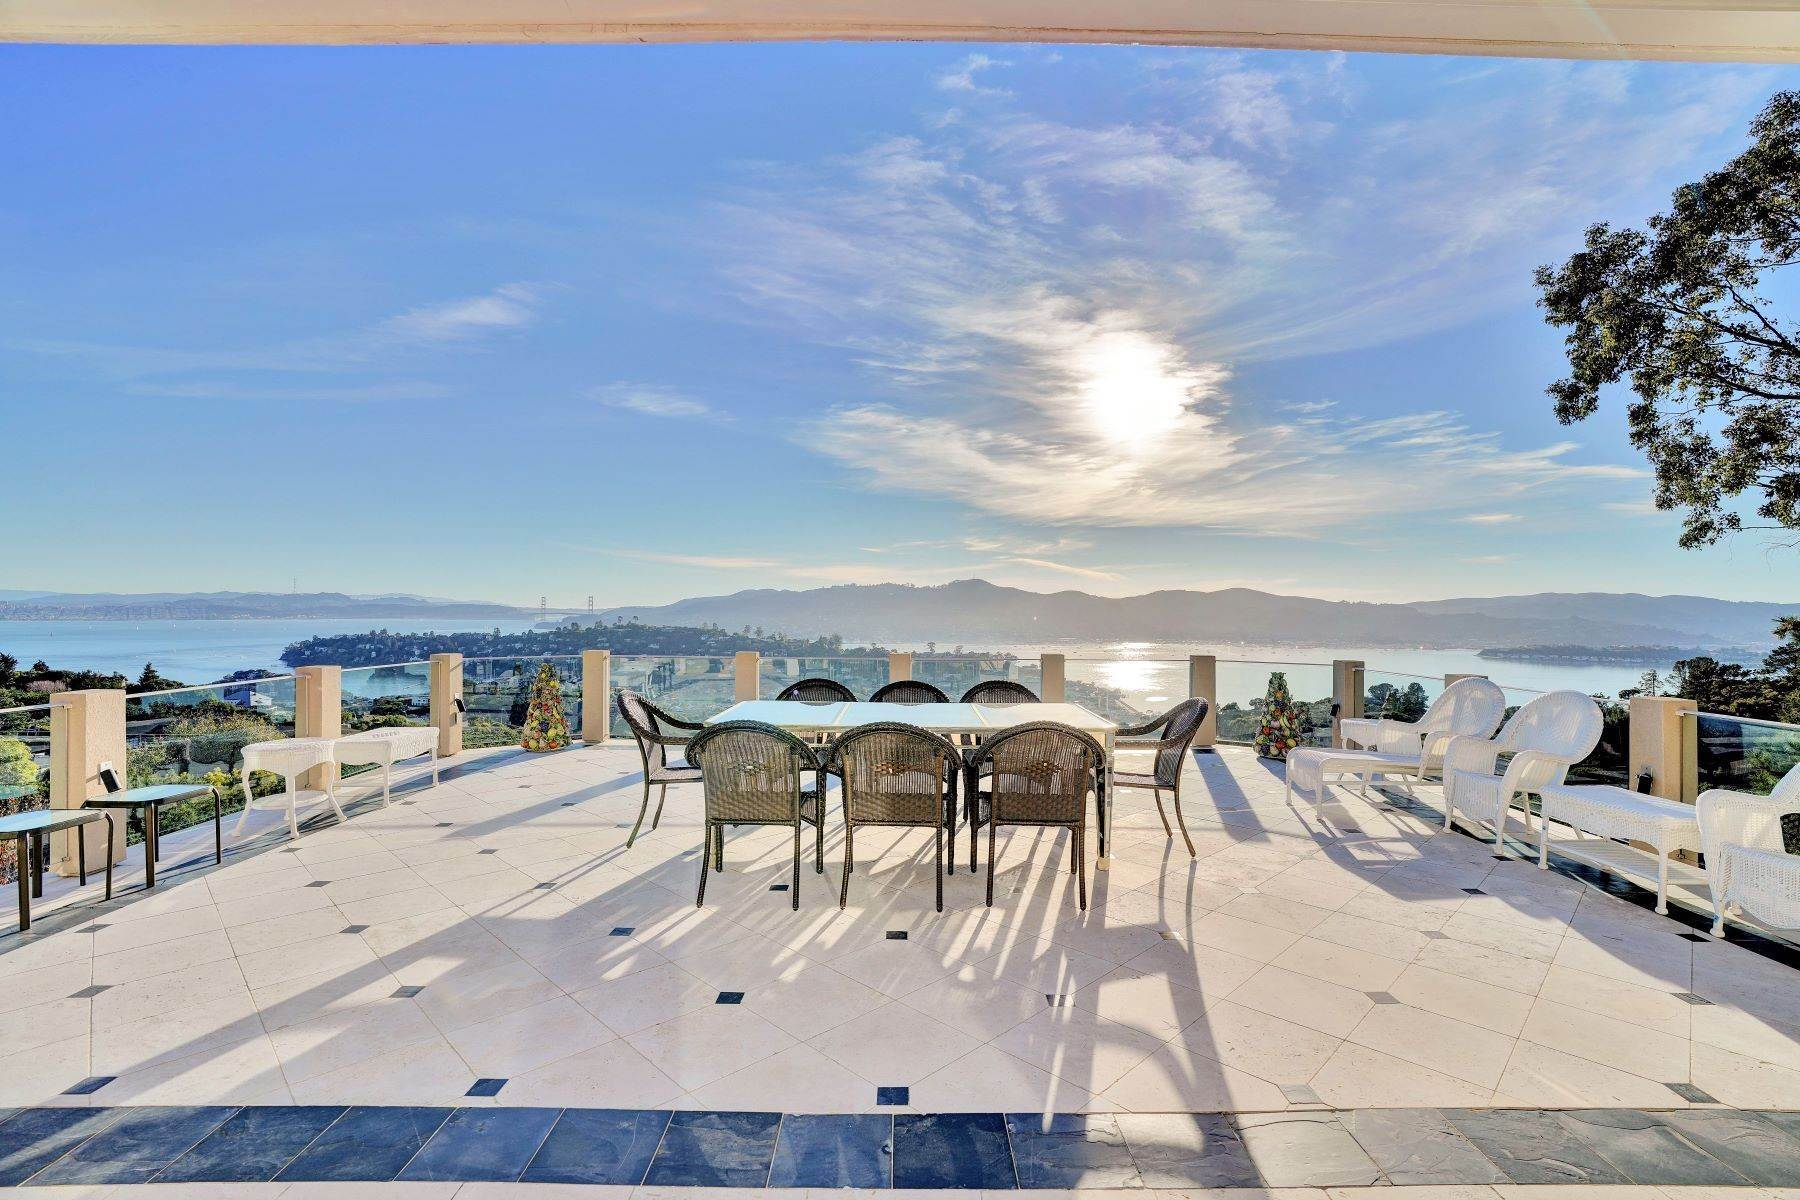 Property for Sale at Gated Estate With Stunning Views! 10 Venado Drive Tiburon, California 94920 United States